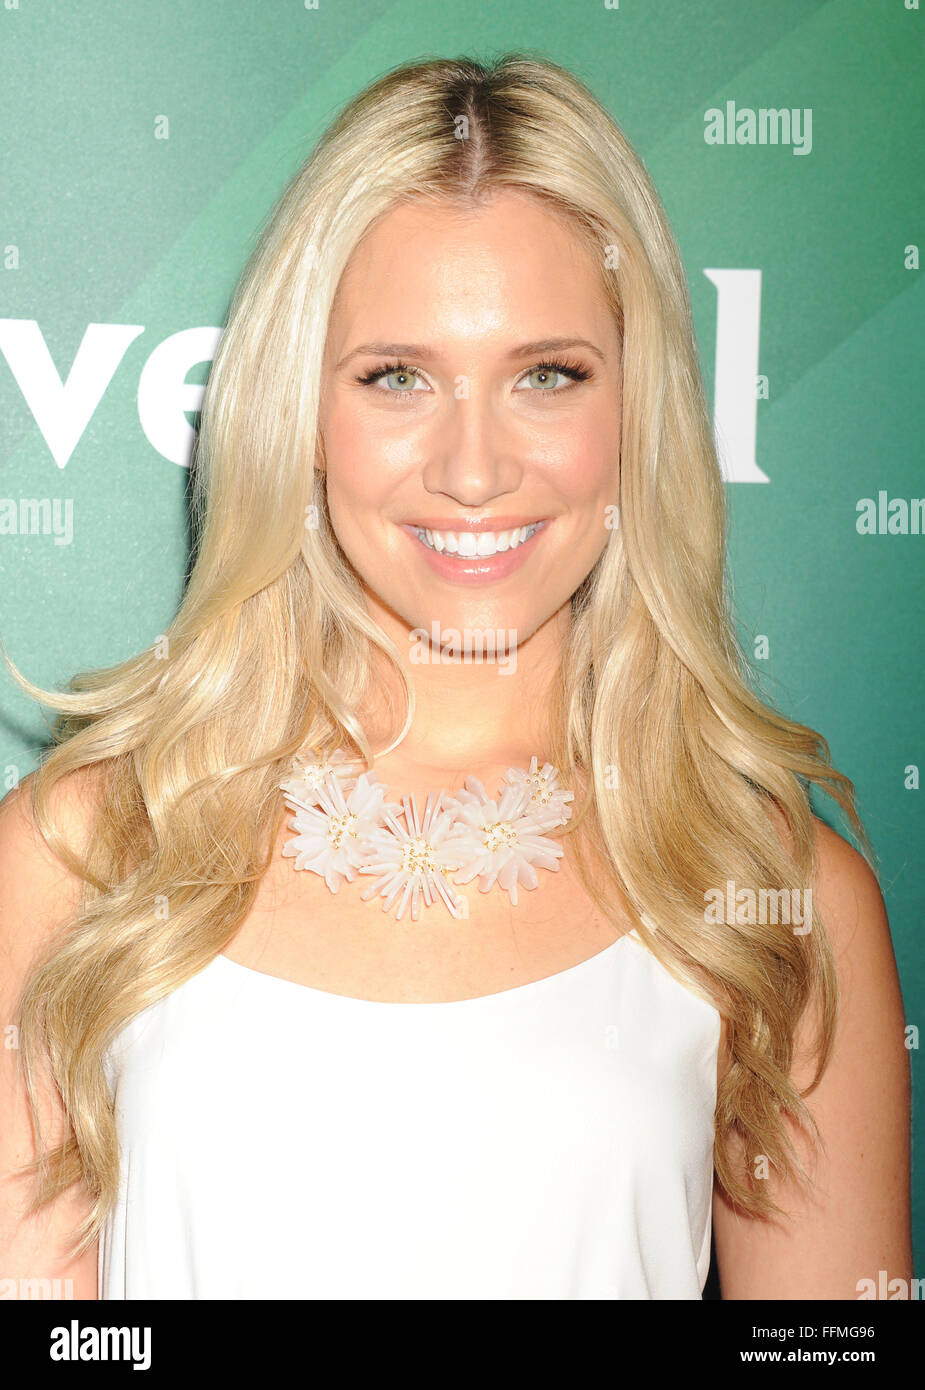 Actress Kristine Leahy attends the 2015 NBCUniversal Summer Press Day held at the The Langham Huntington Hotel and Stock Photo